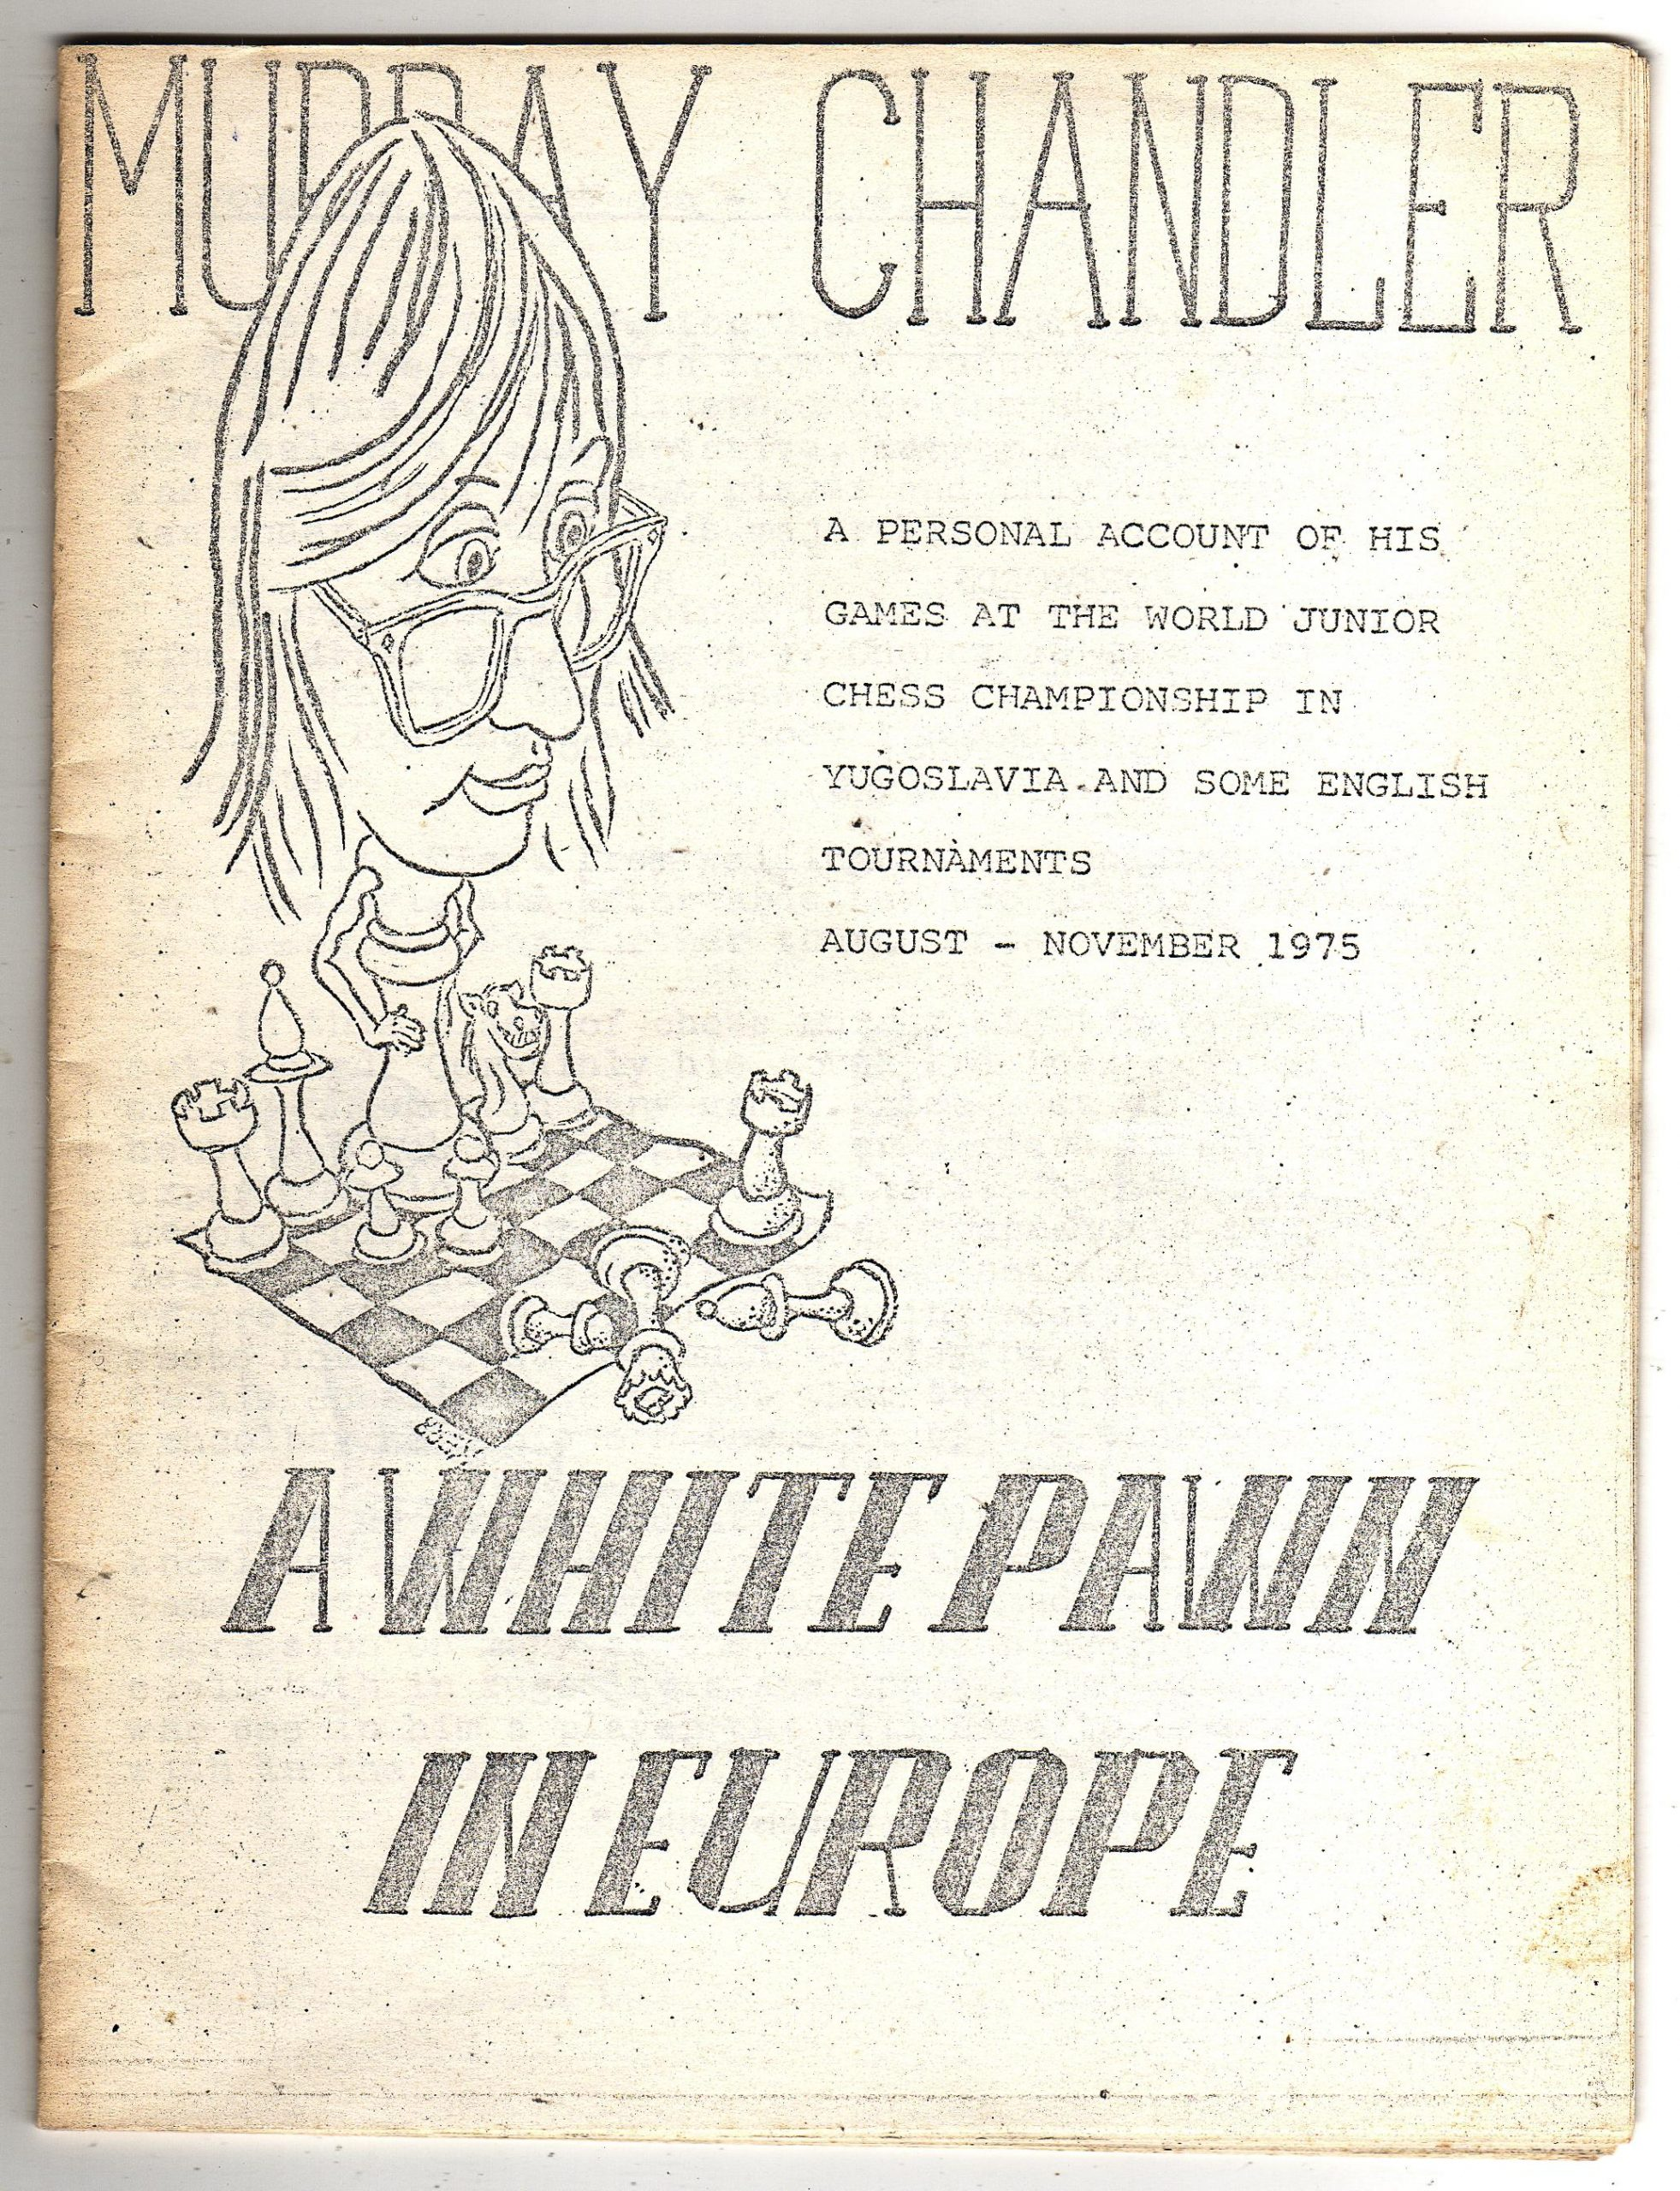 A White Pawn in Europe, Murray Chandler, 1975